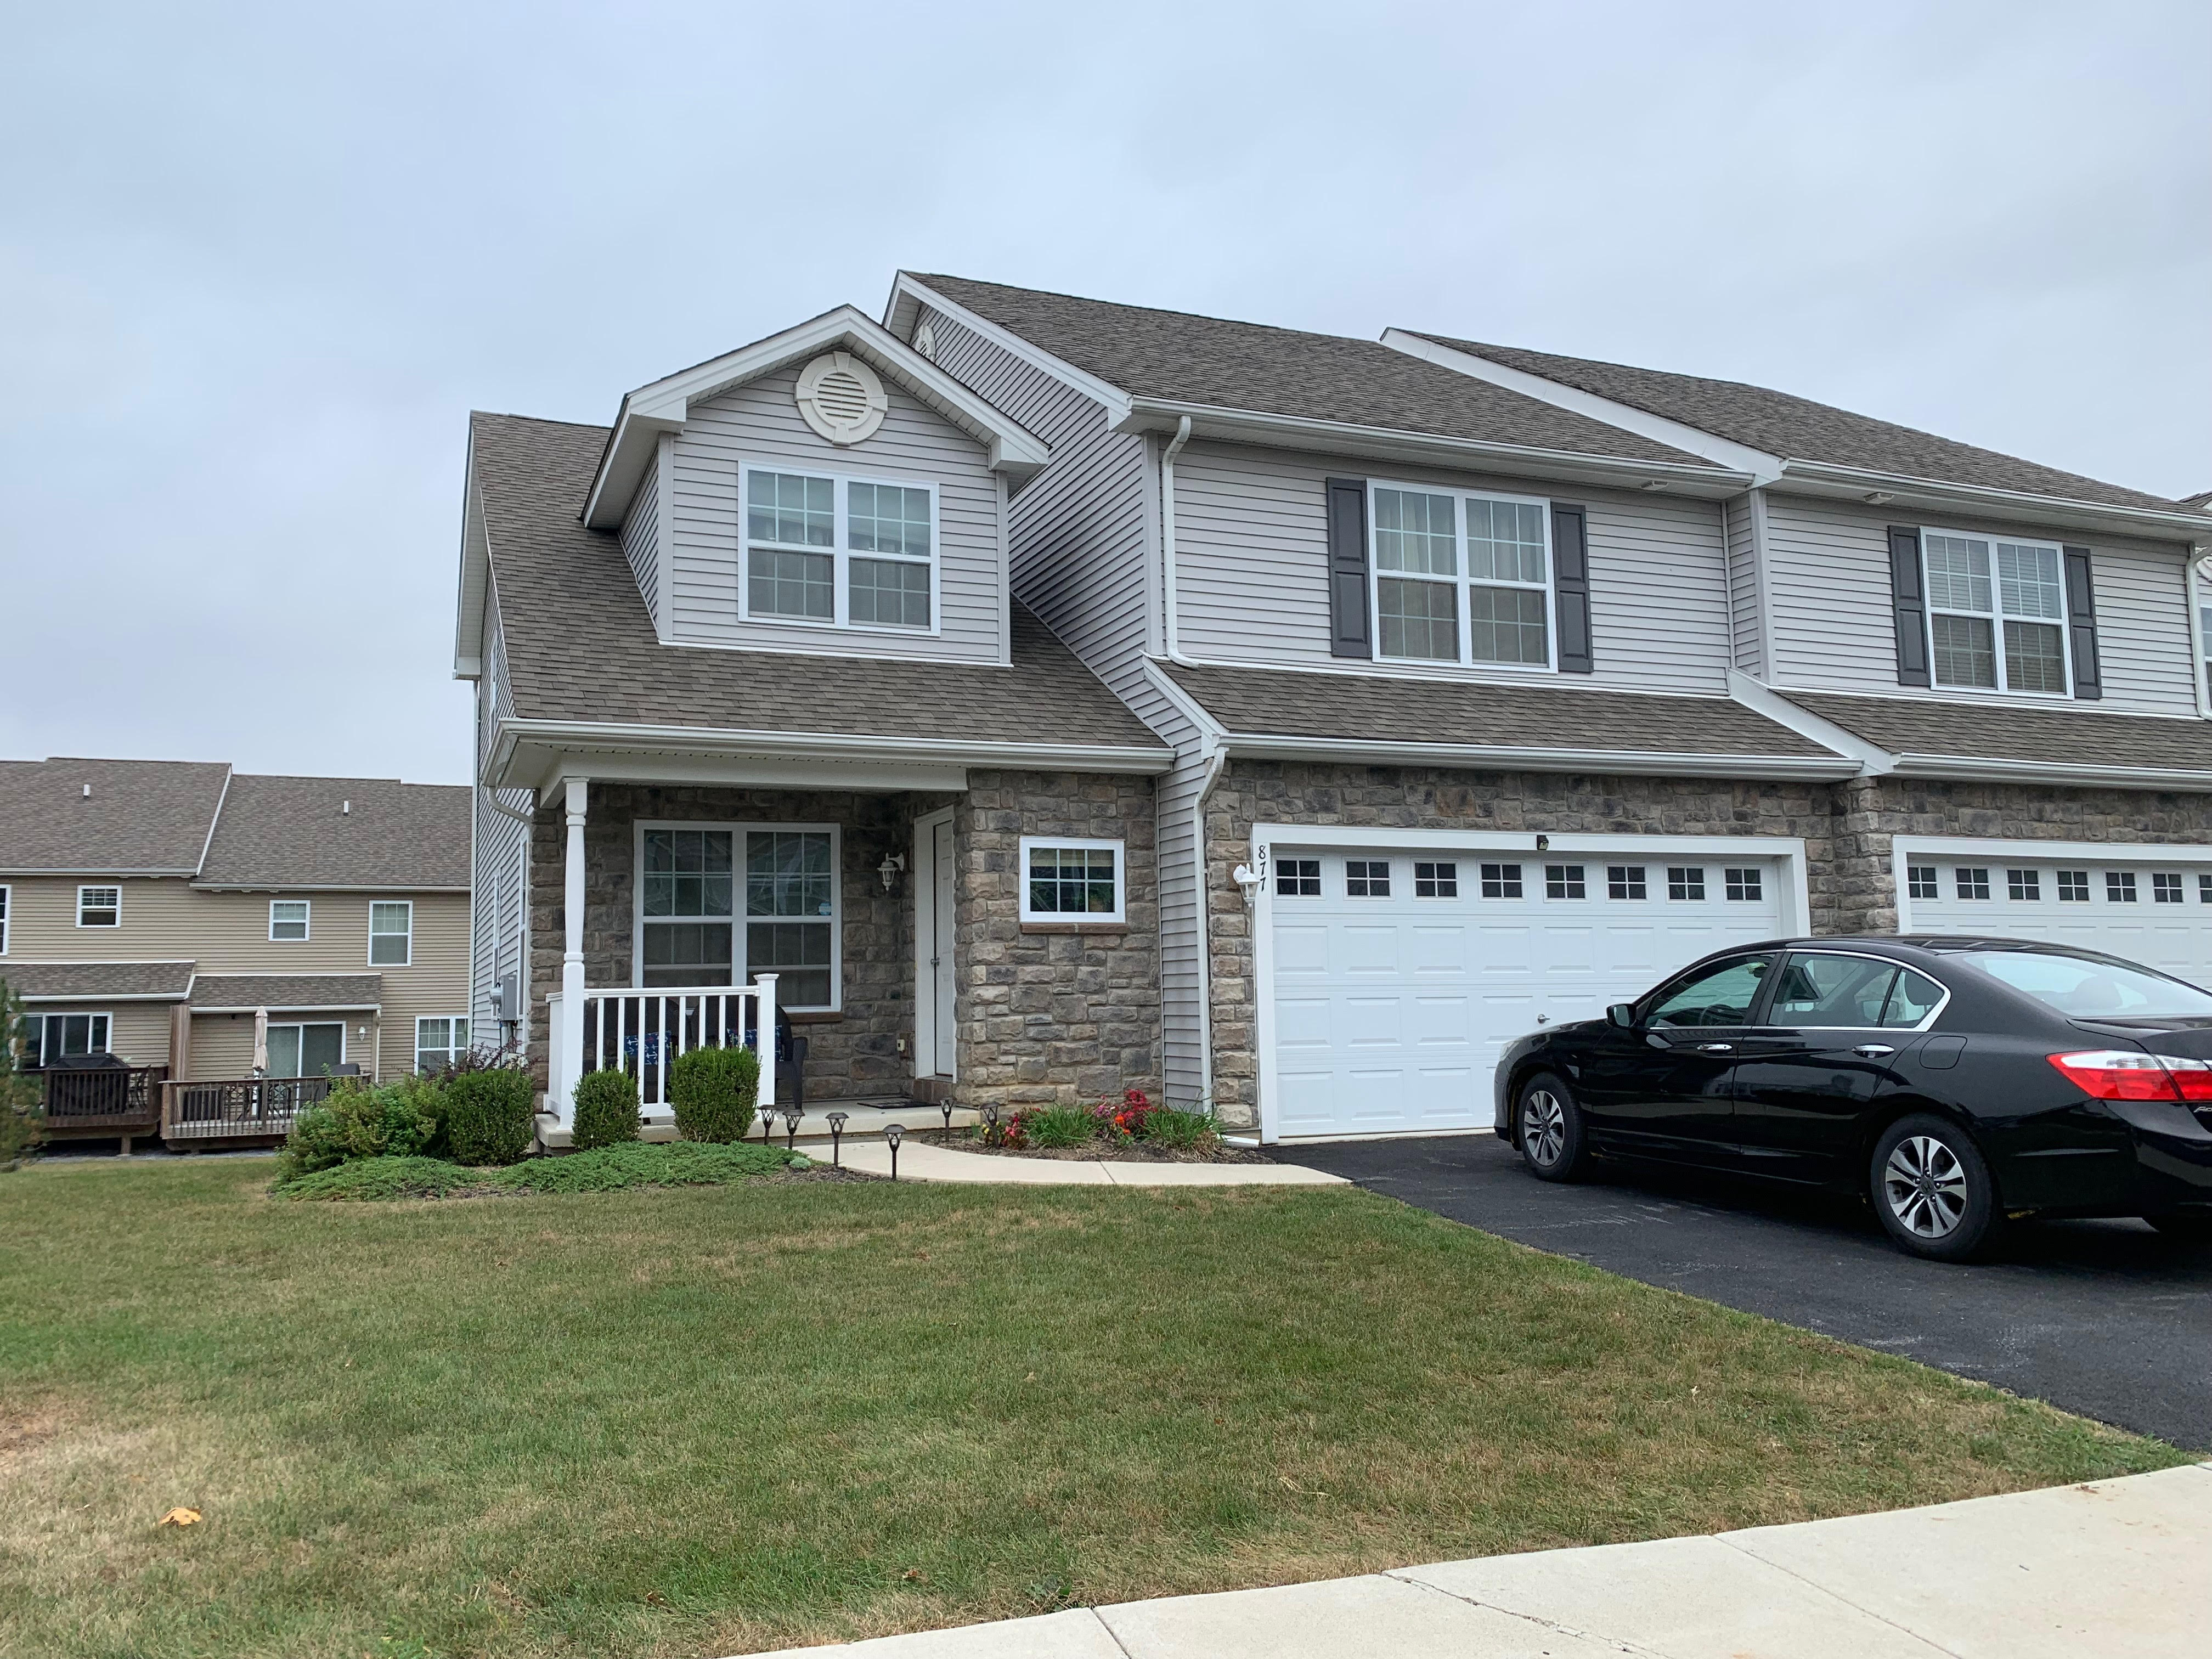 Easton – 4 Bedroom 3 Bath $299,999